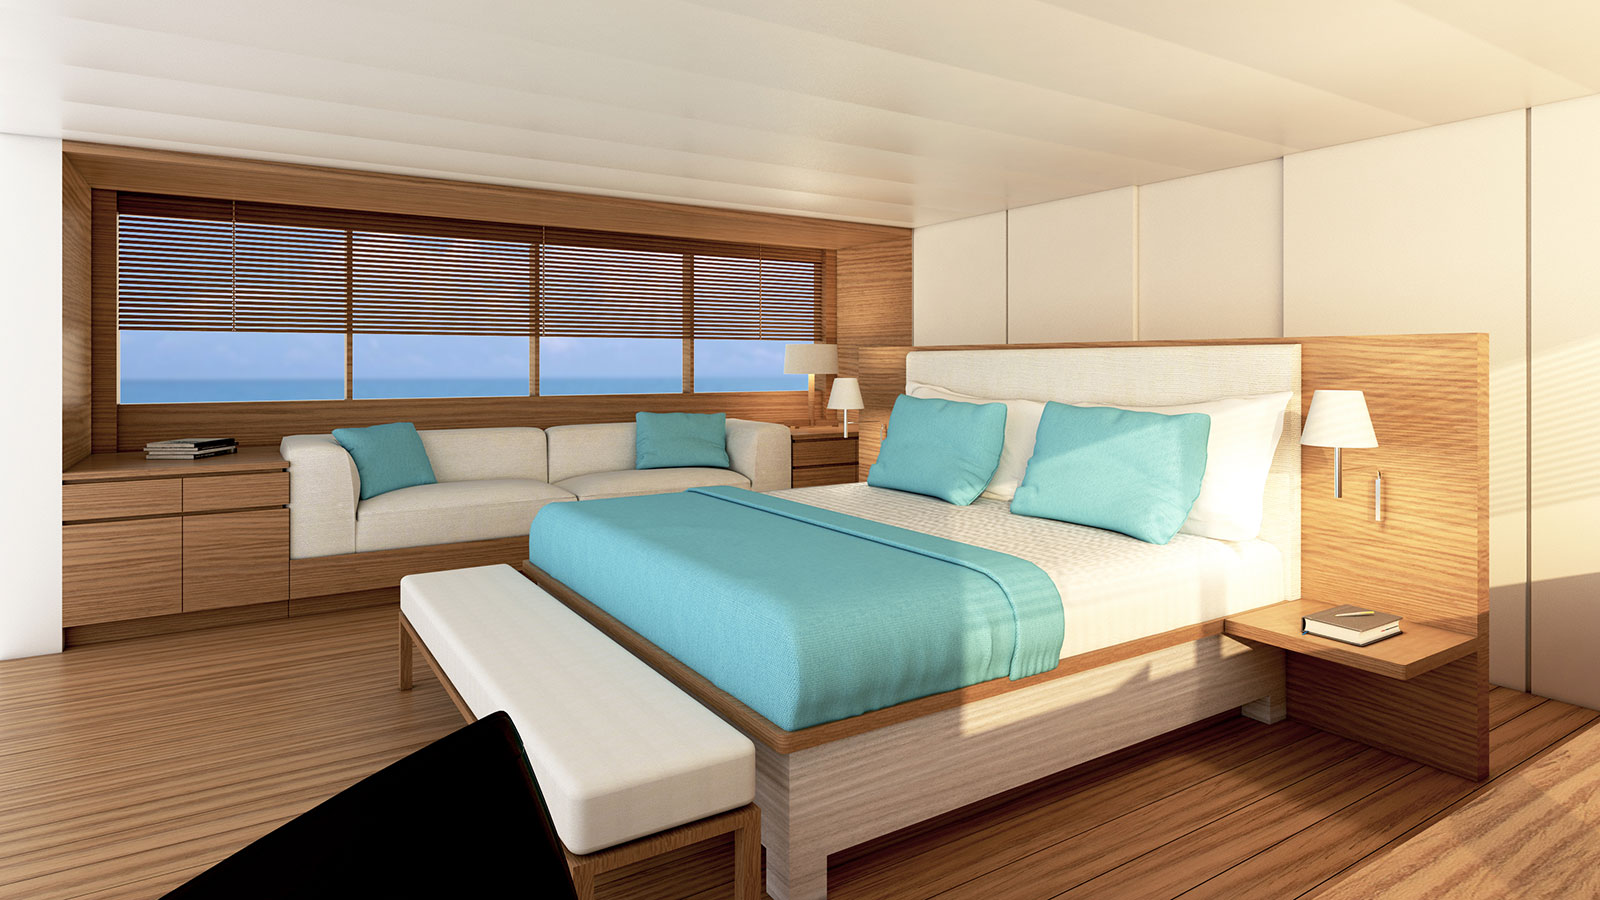 the-owners-cabin-of-the-ccn-explorer-yacht-kanga